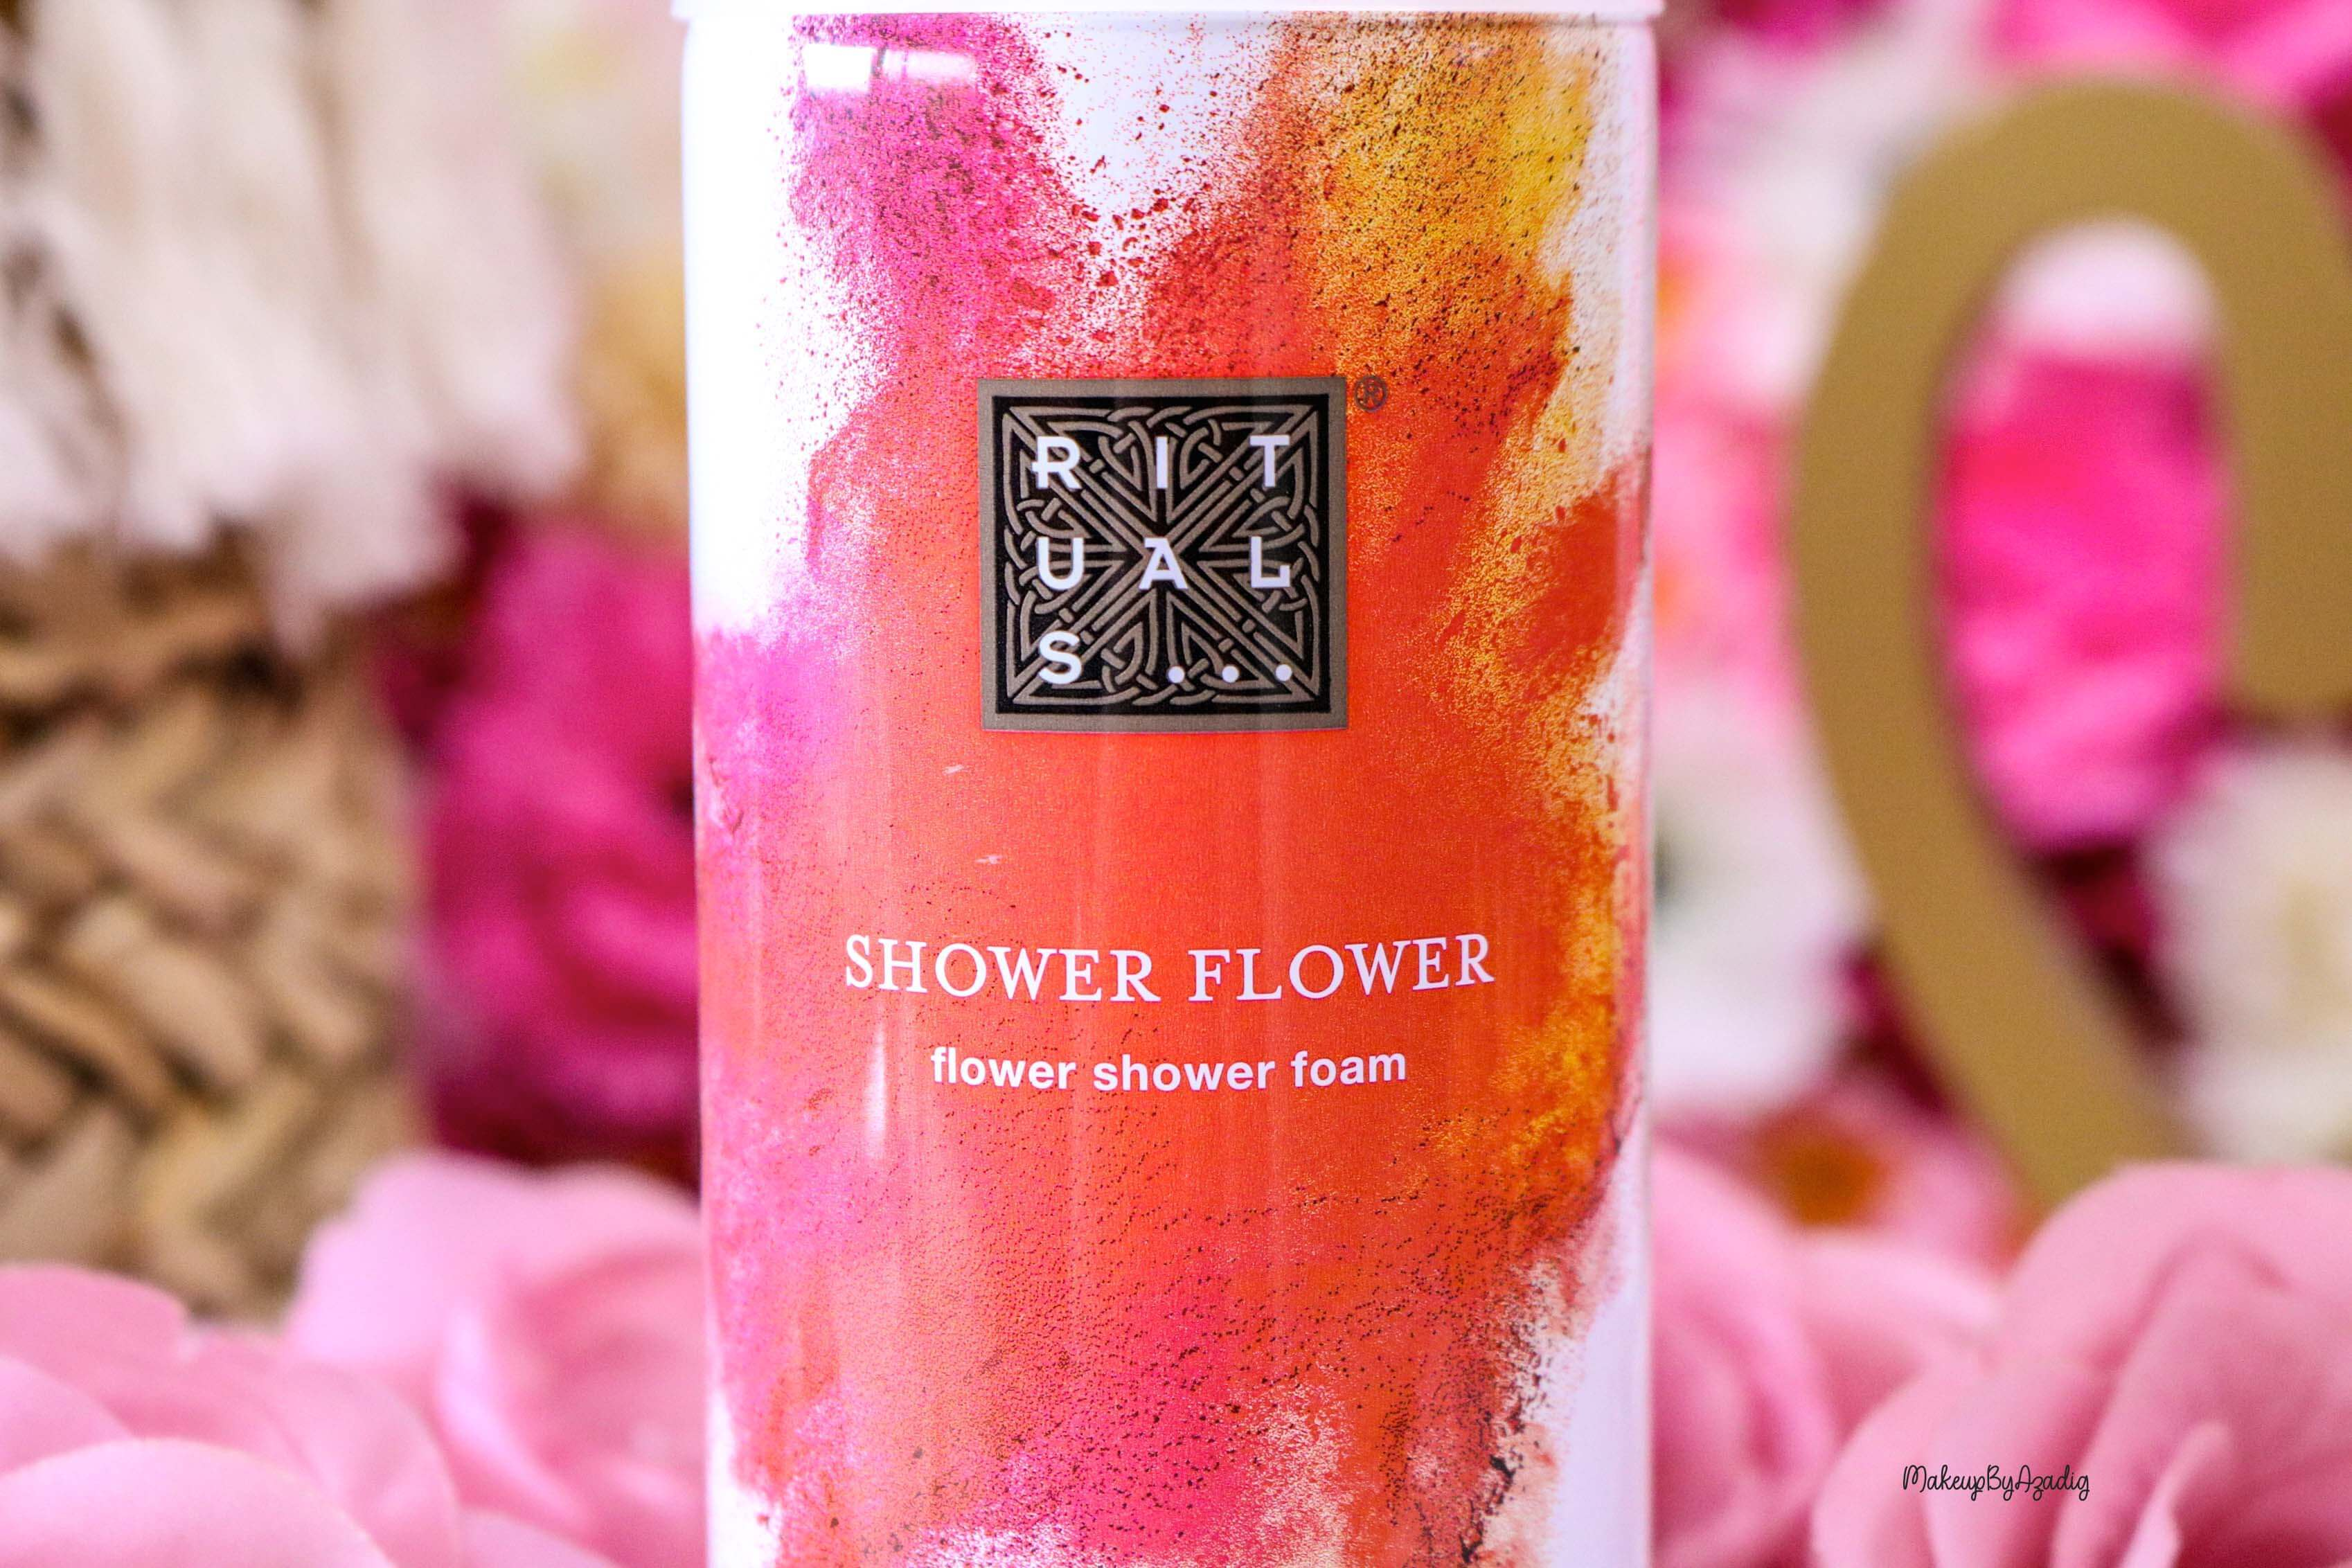 gel-douche-mousse-rituals-shower-flower-foam-ritual-hoi-makeupbyazadig-avis-prix-sephora-france-zoom